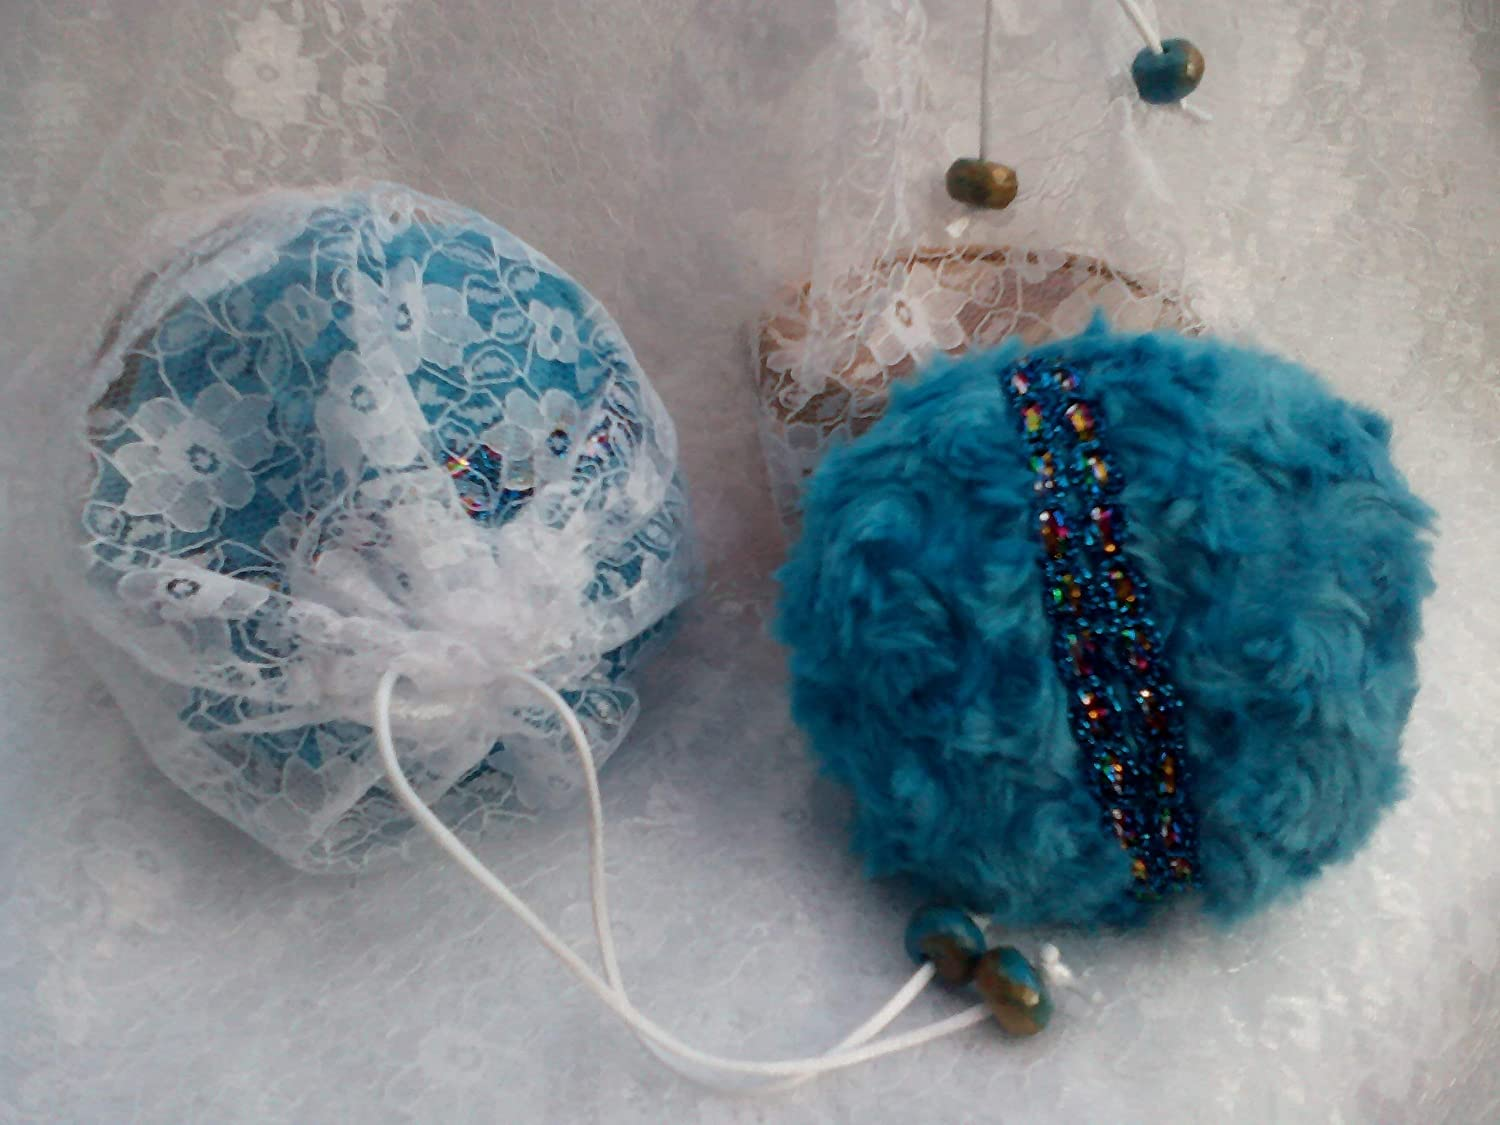 Tilly's Legacy. Dusting Powder & Turquoise Powder Puff / Pouf. Handmade 4 inch Plush Powder Puff, 100g Your Choice of Silky Body Dusting Powder, in a Lace Drawstring Bag with Bead Detail. Gift Bag. Gift for Her. Vegan Gift.